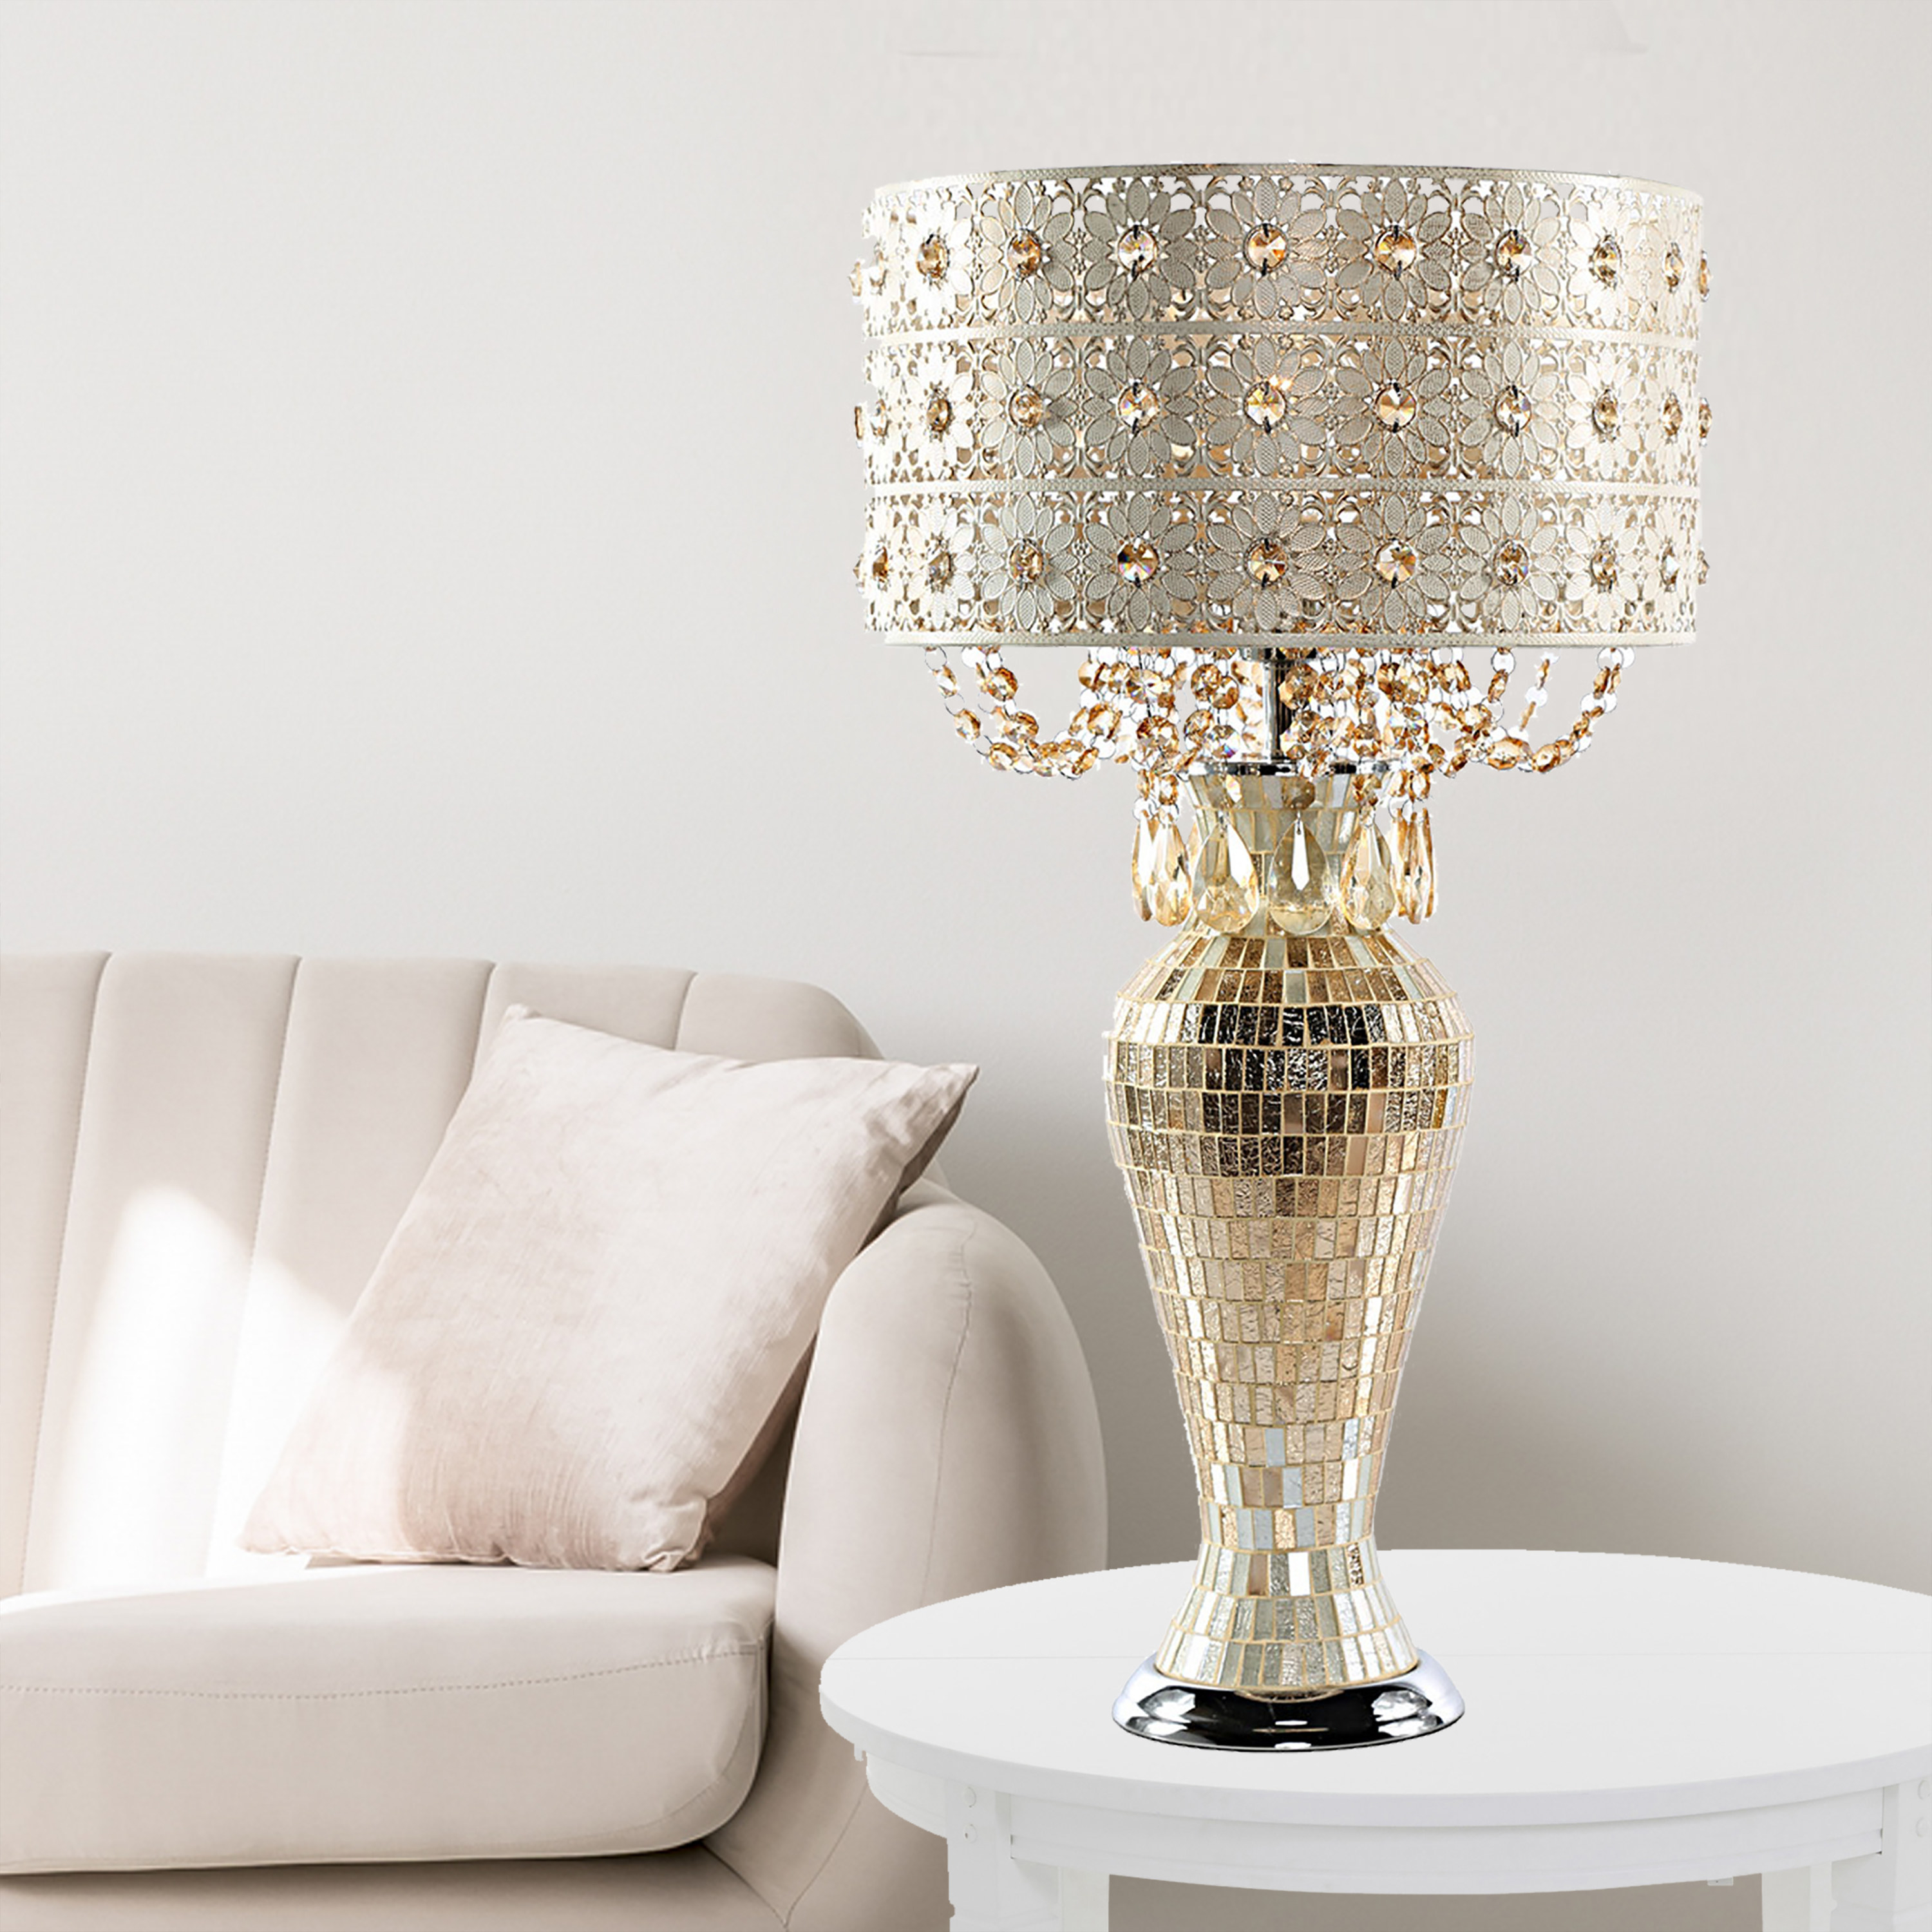 the gold lamp on a table